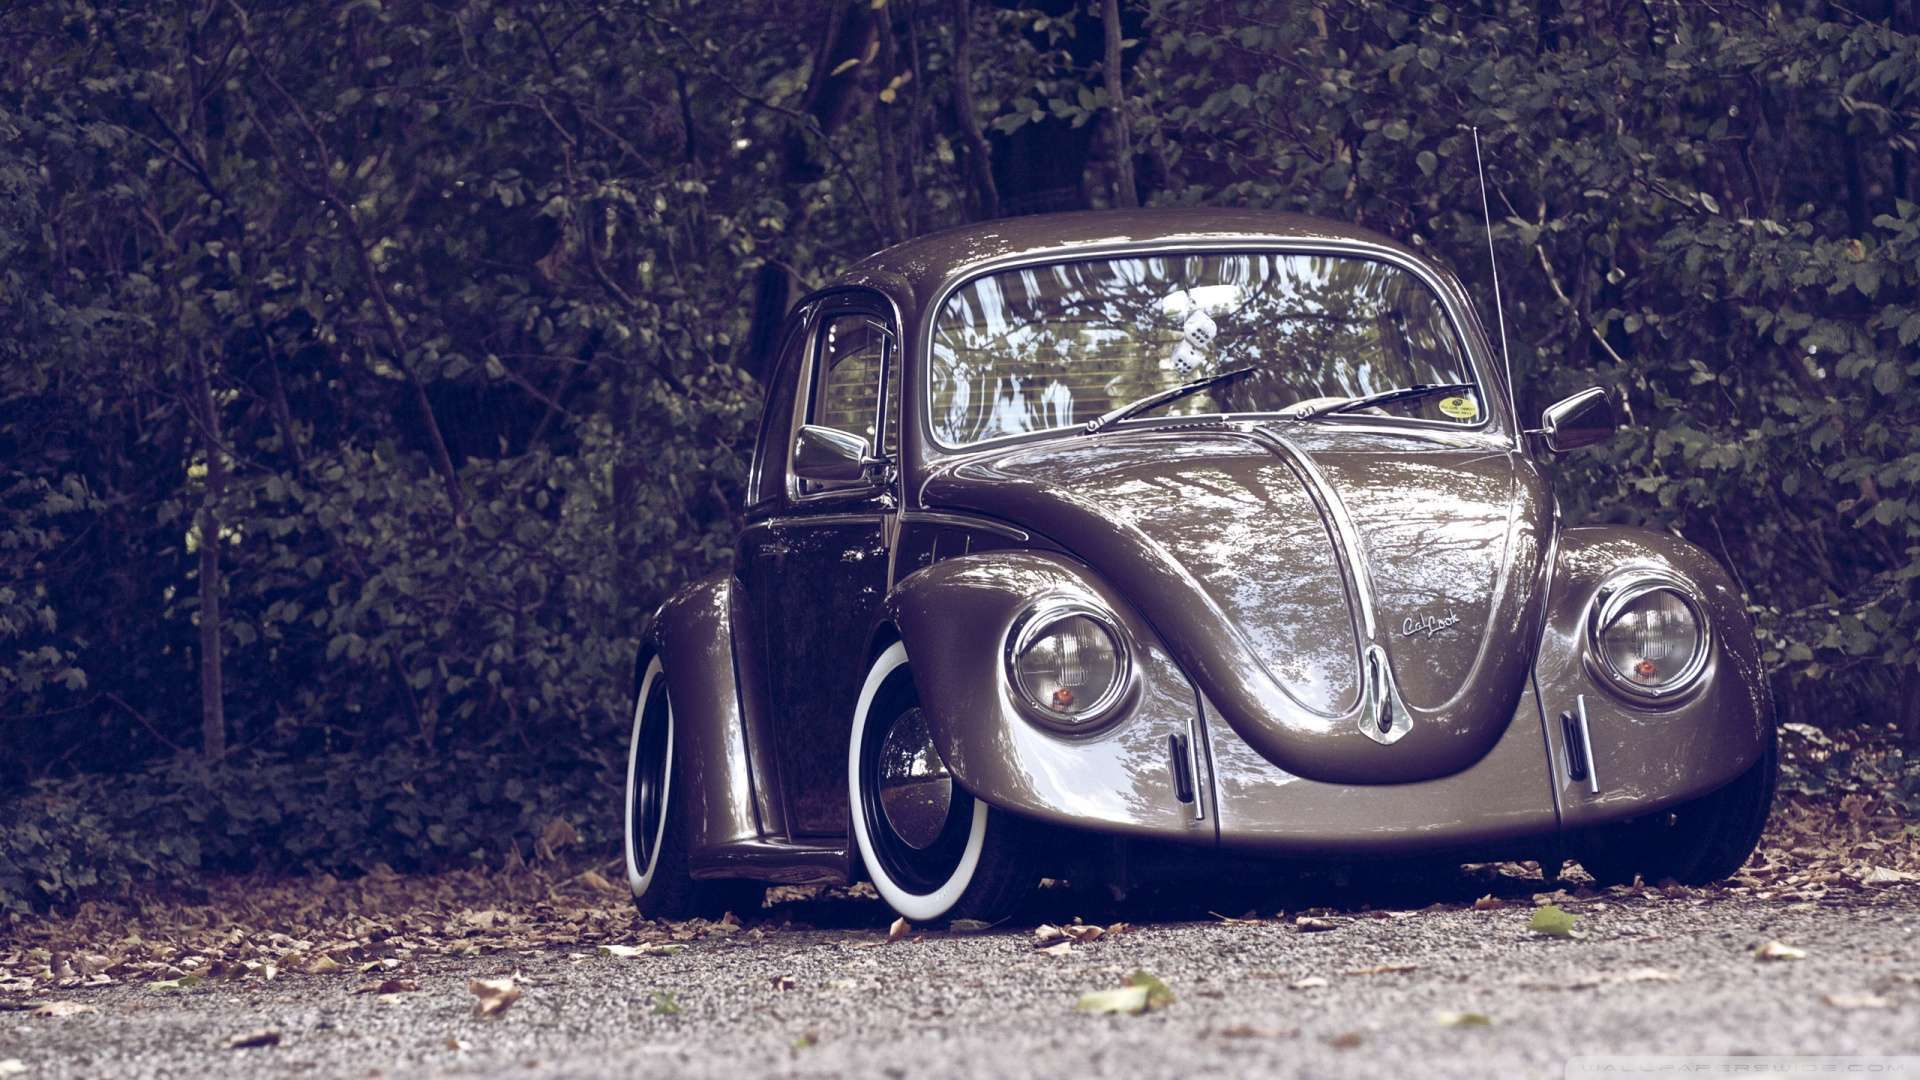 Wallpaper Volkswagen Beetle Retro Wallpaper 1080p HD Upload at 1920x1080